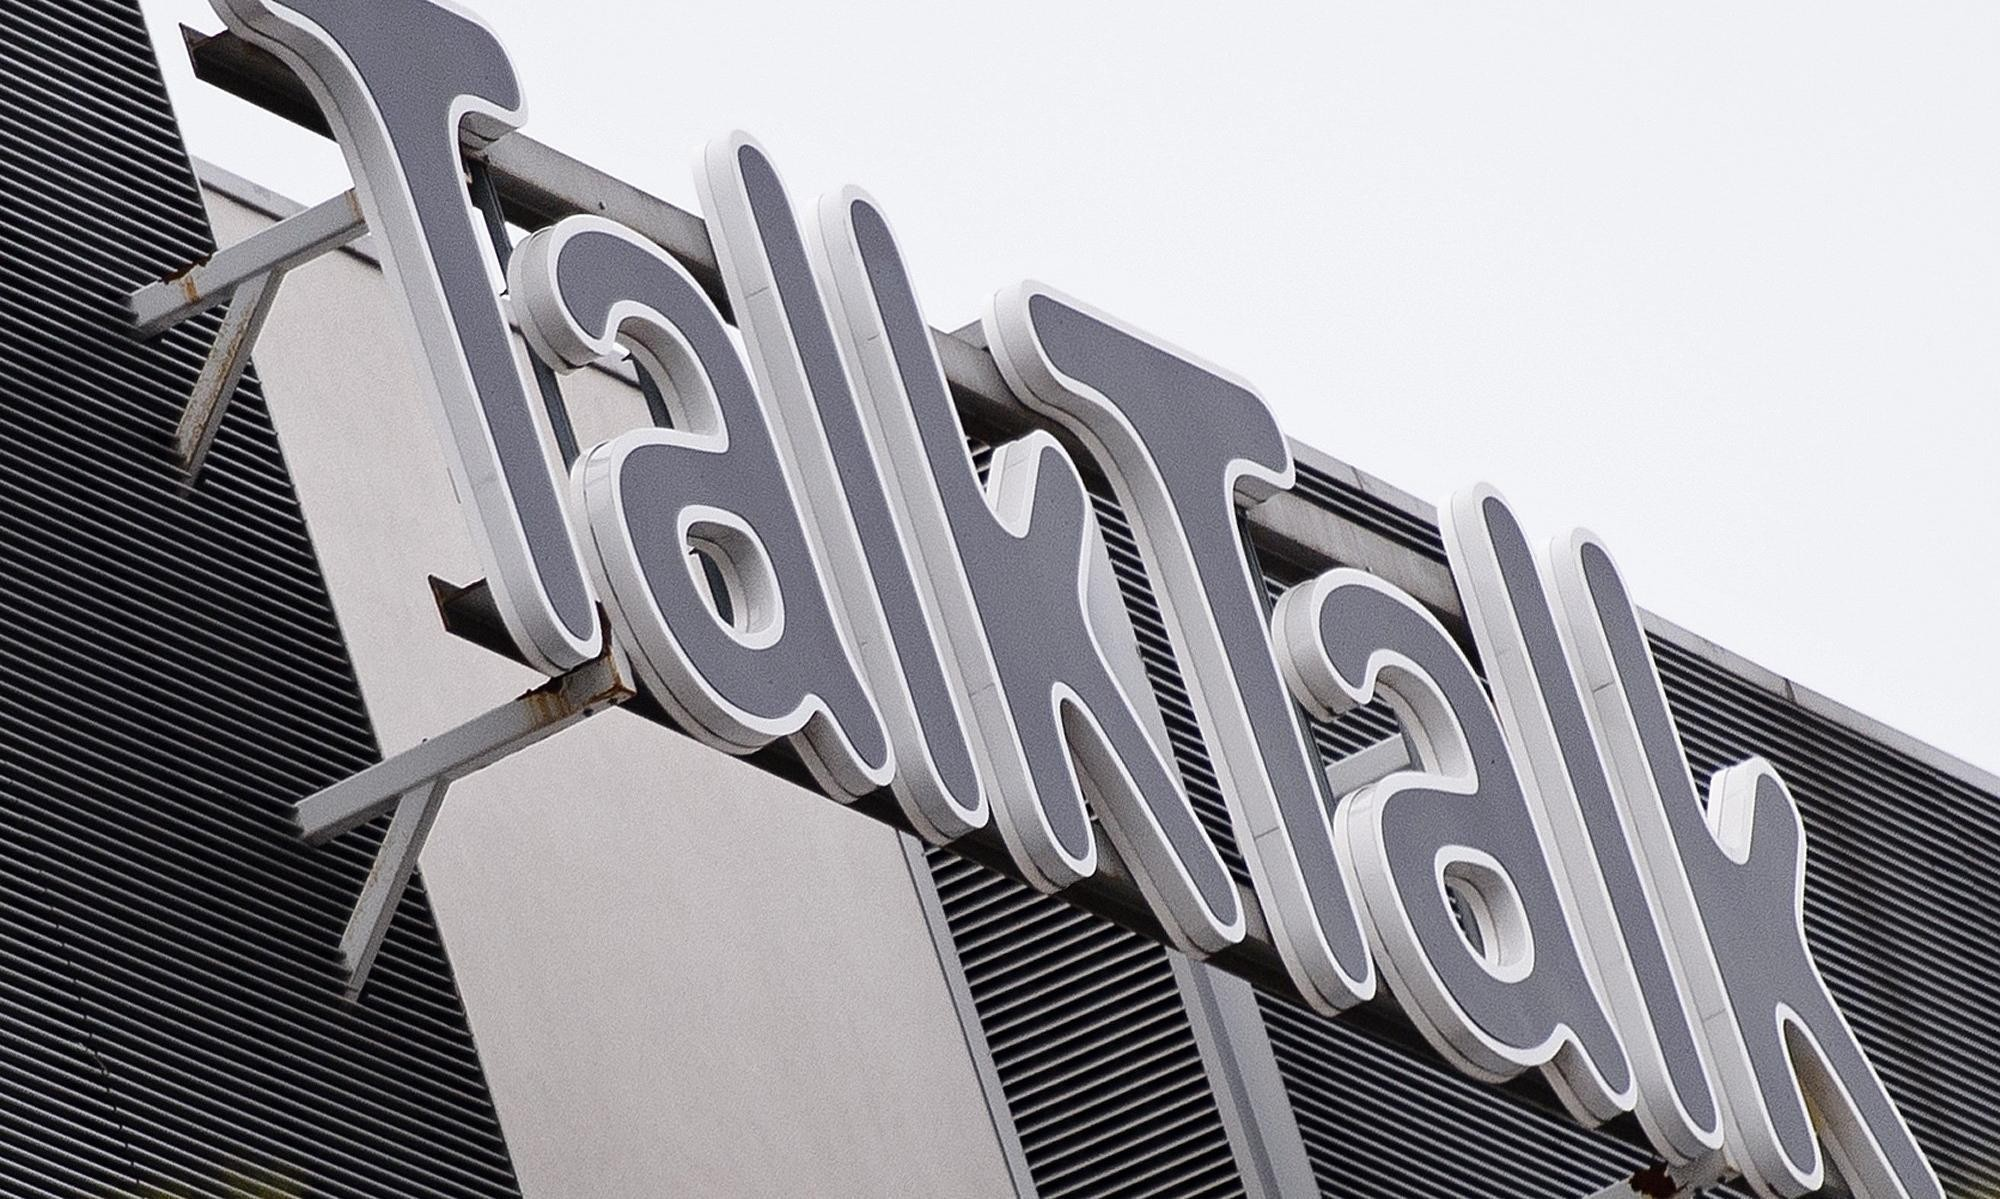 TalkTalk says hackers accessed fraction of data originally thought